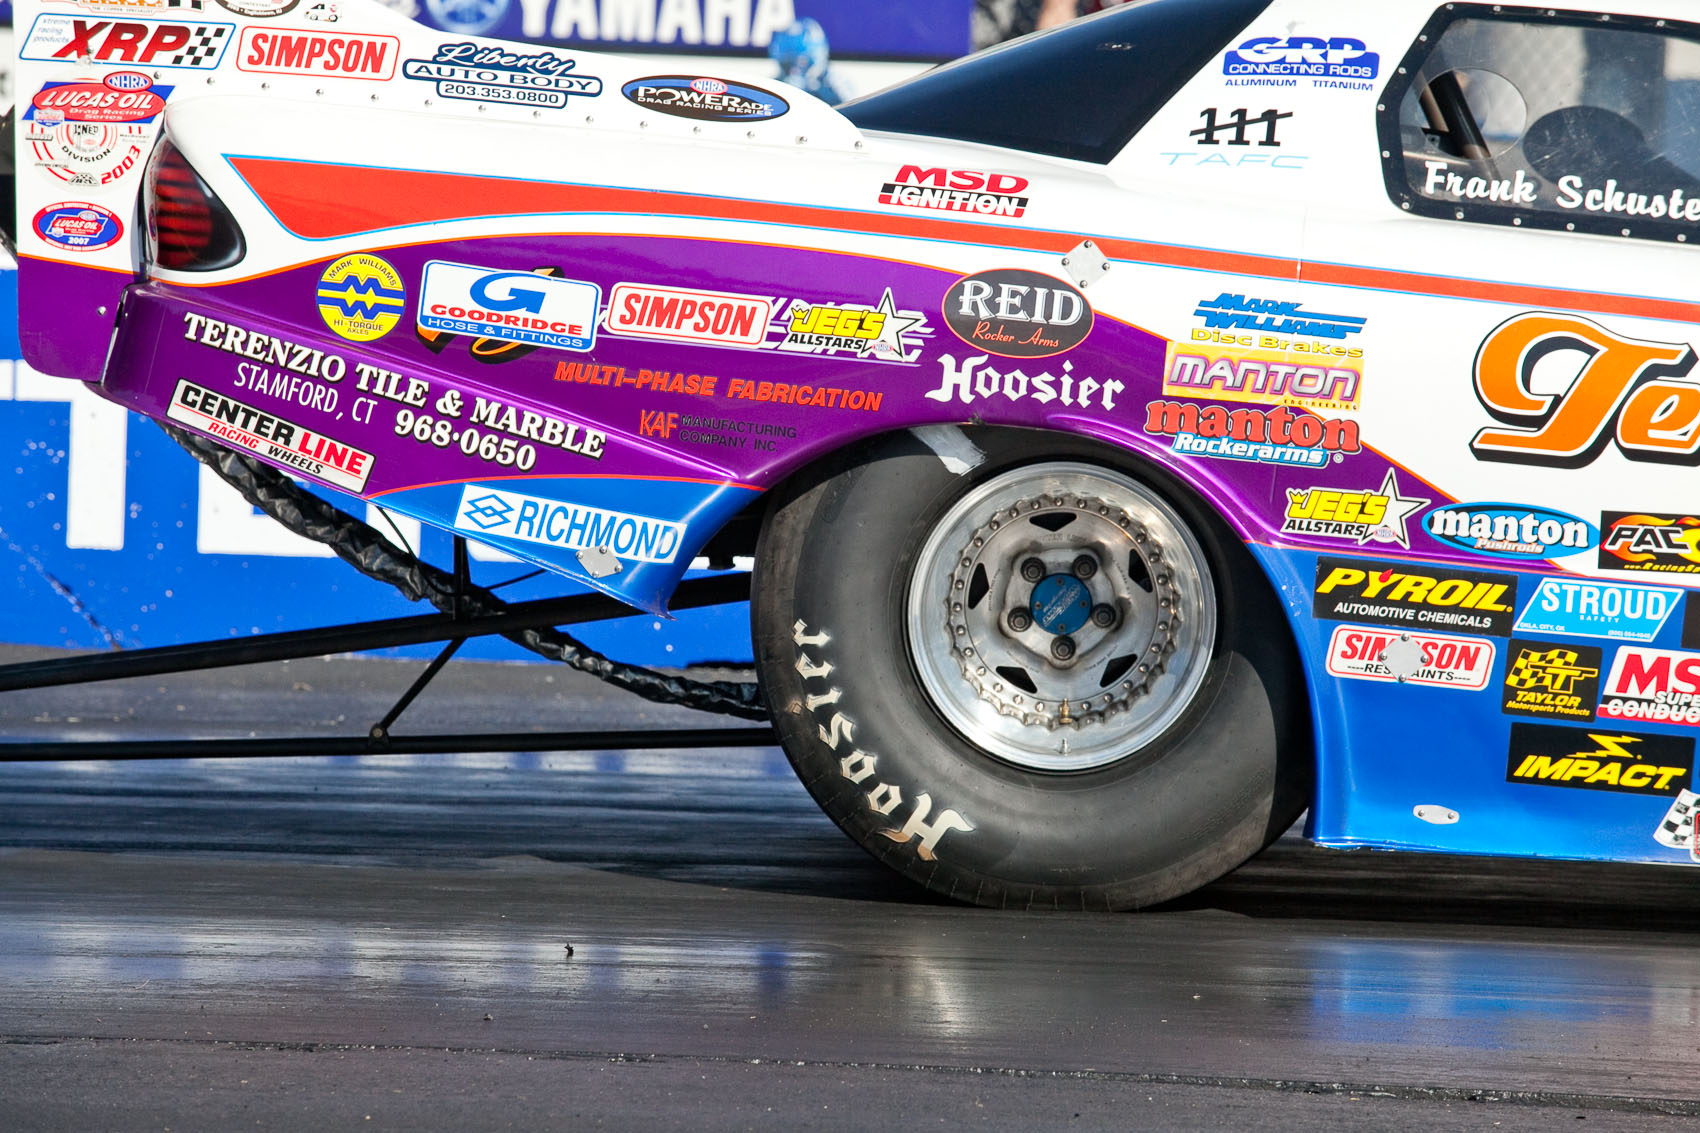 Location Photograph of Hoosier Racing Slicks on a Funny Car at the Toyo Tire Nationals at Maple Grove Raceway in Mohnton, PA | J. Eldon Zimmerman Photography | Lancaster, PA Commercial Photographer